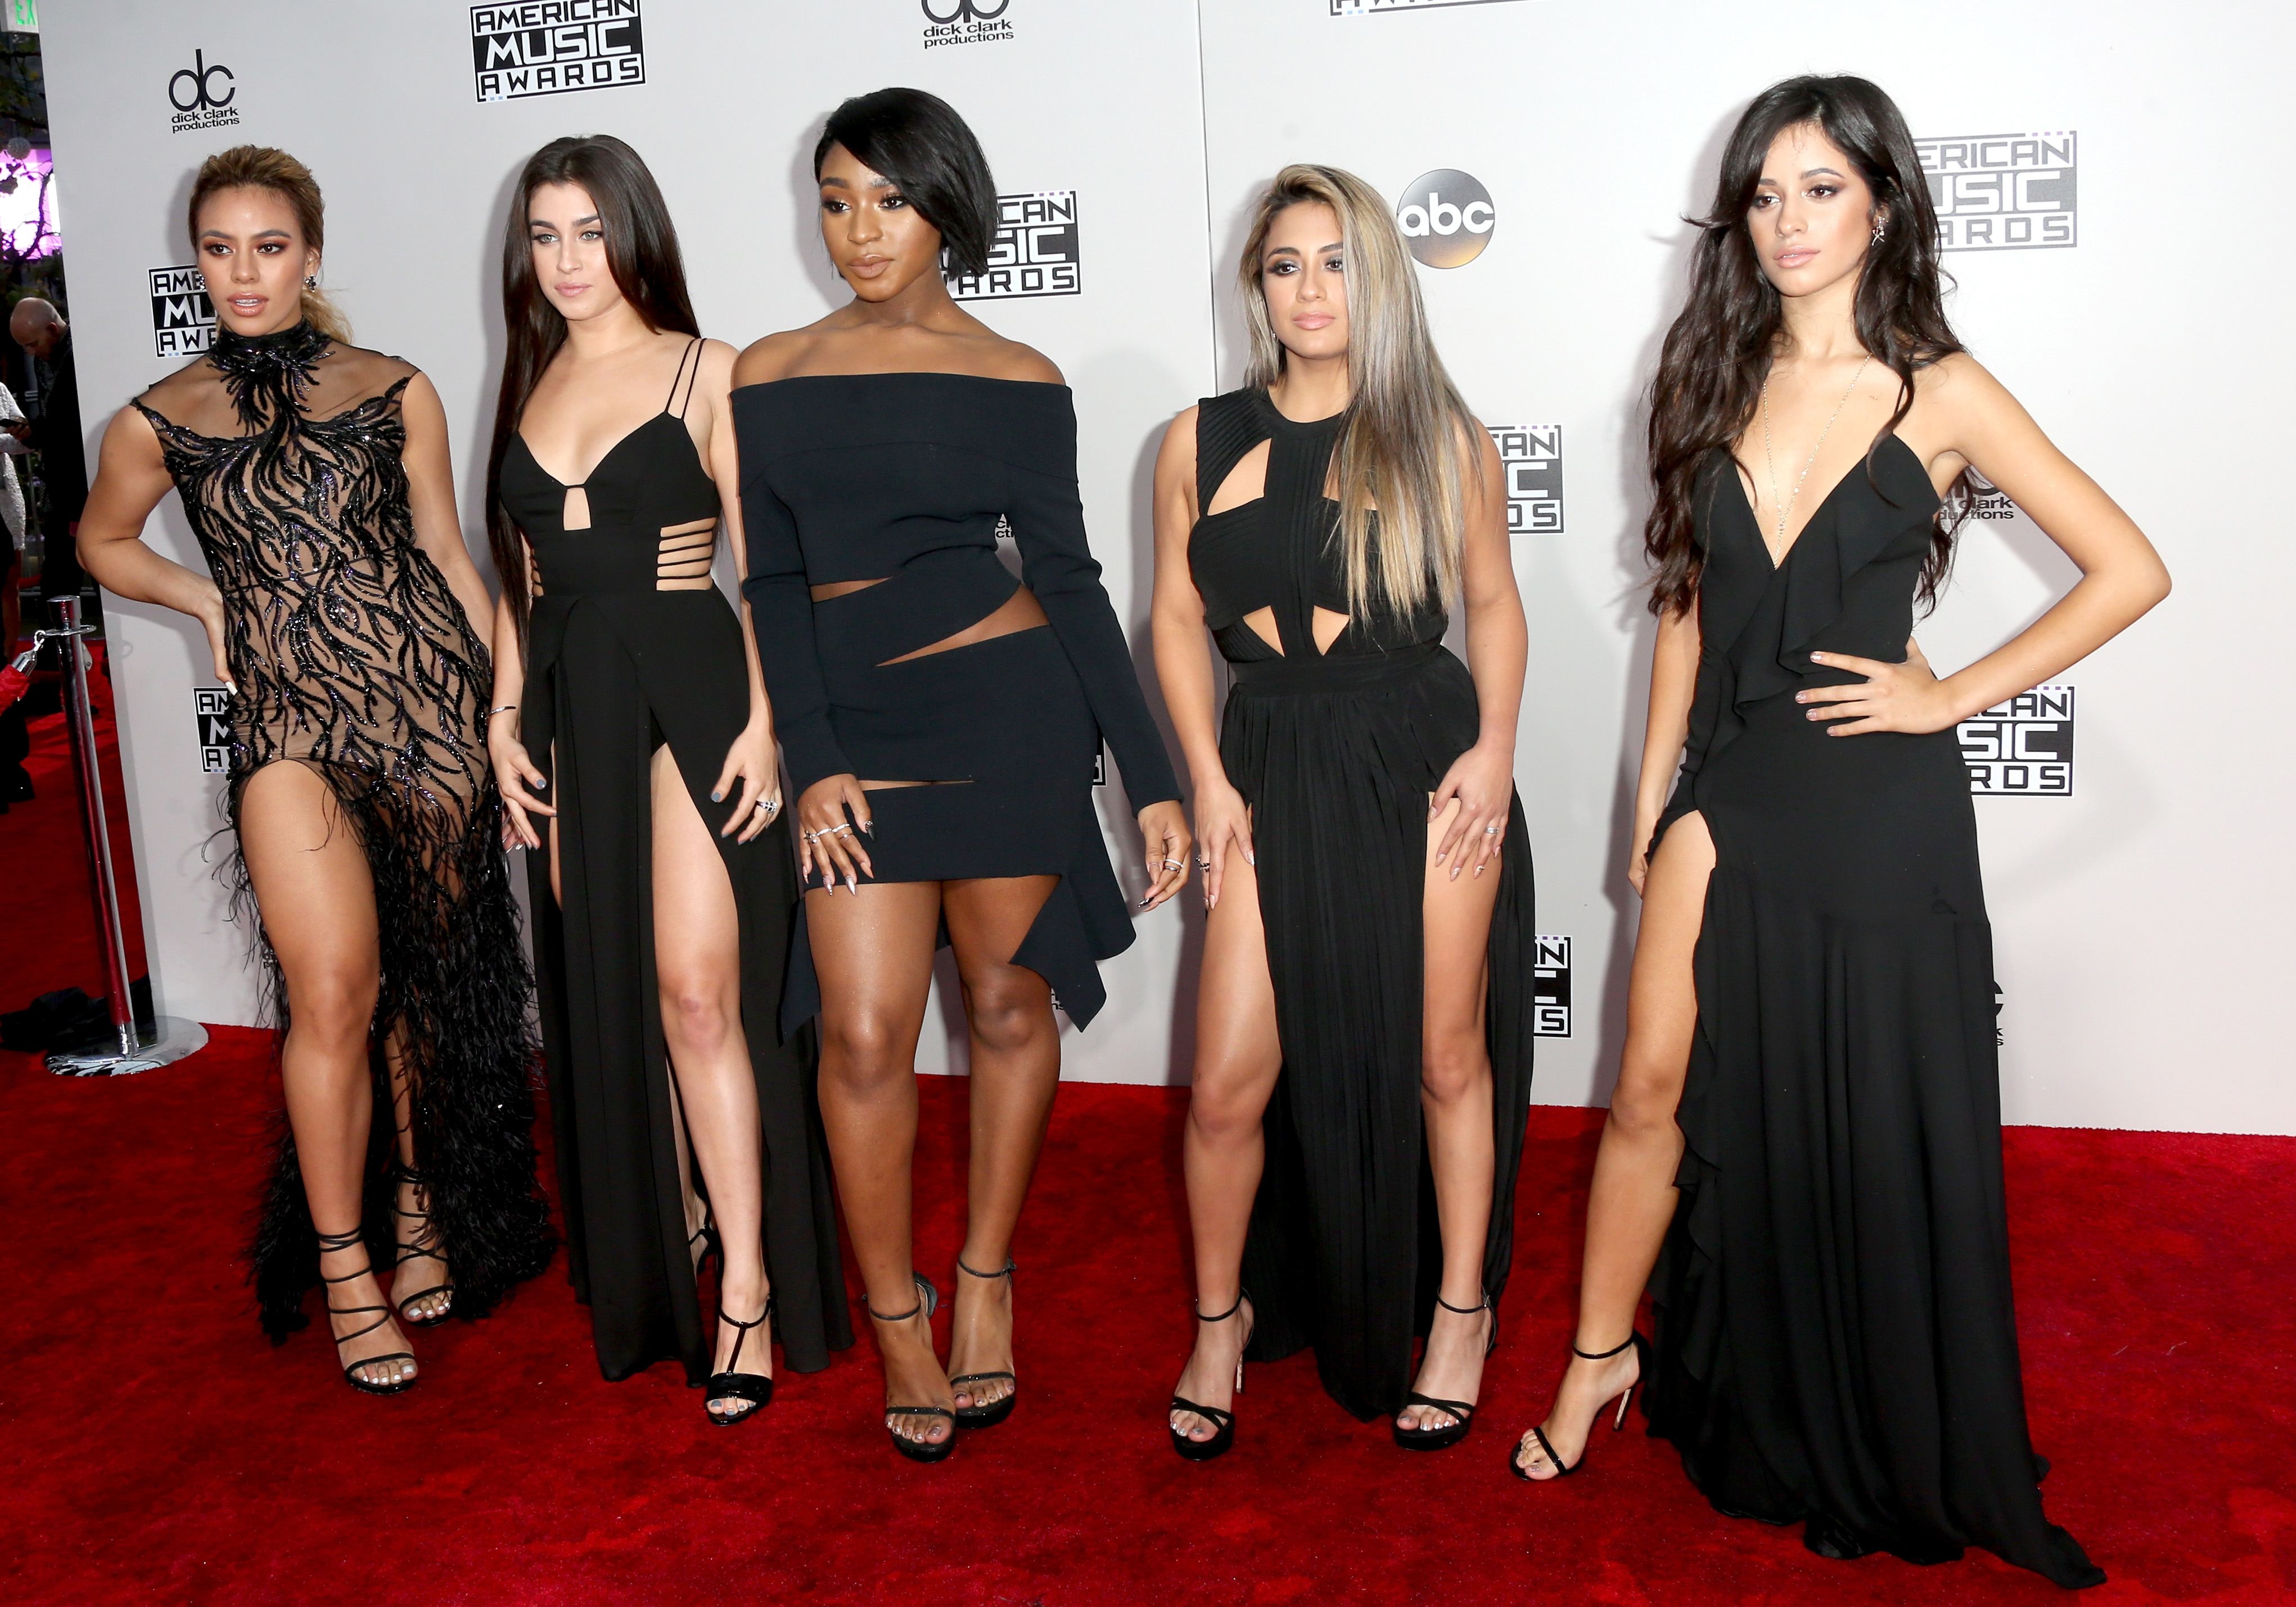 LOS ANGELES, CA - NOVEMBER 20: (L-R) recording artists Dinah Jane Hansen, Lauren Jauregui, Normani Hamilton, Ally Brooke and Camila Cabello of musical group Fifth Harmony attends the 2016 American Music Awards at Microsoft Theater on November 20, 2016 in Los Angeles, California. (Photo by Frederick M. Brown/Getty Images)